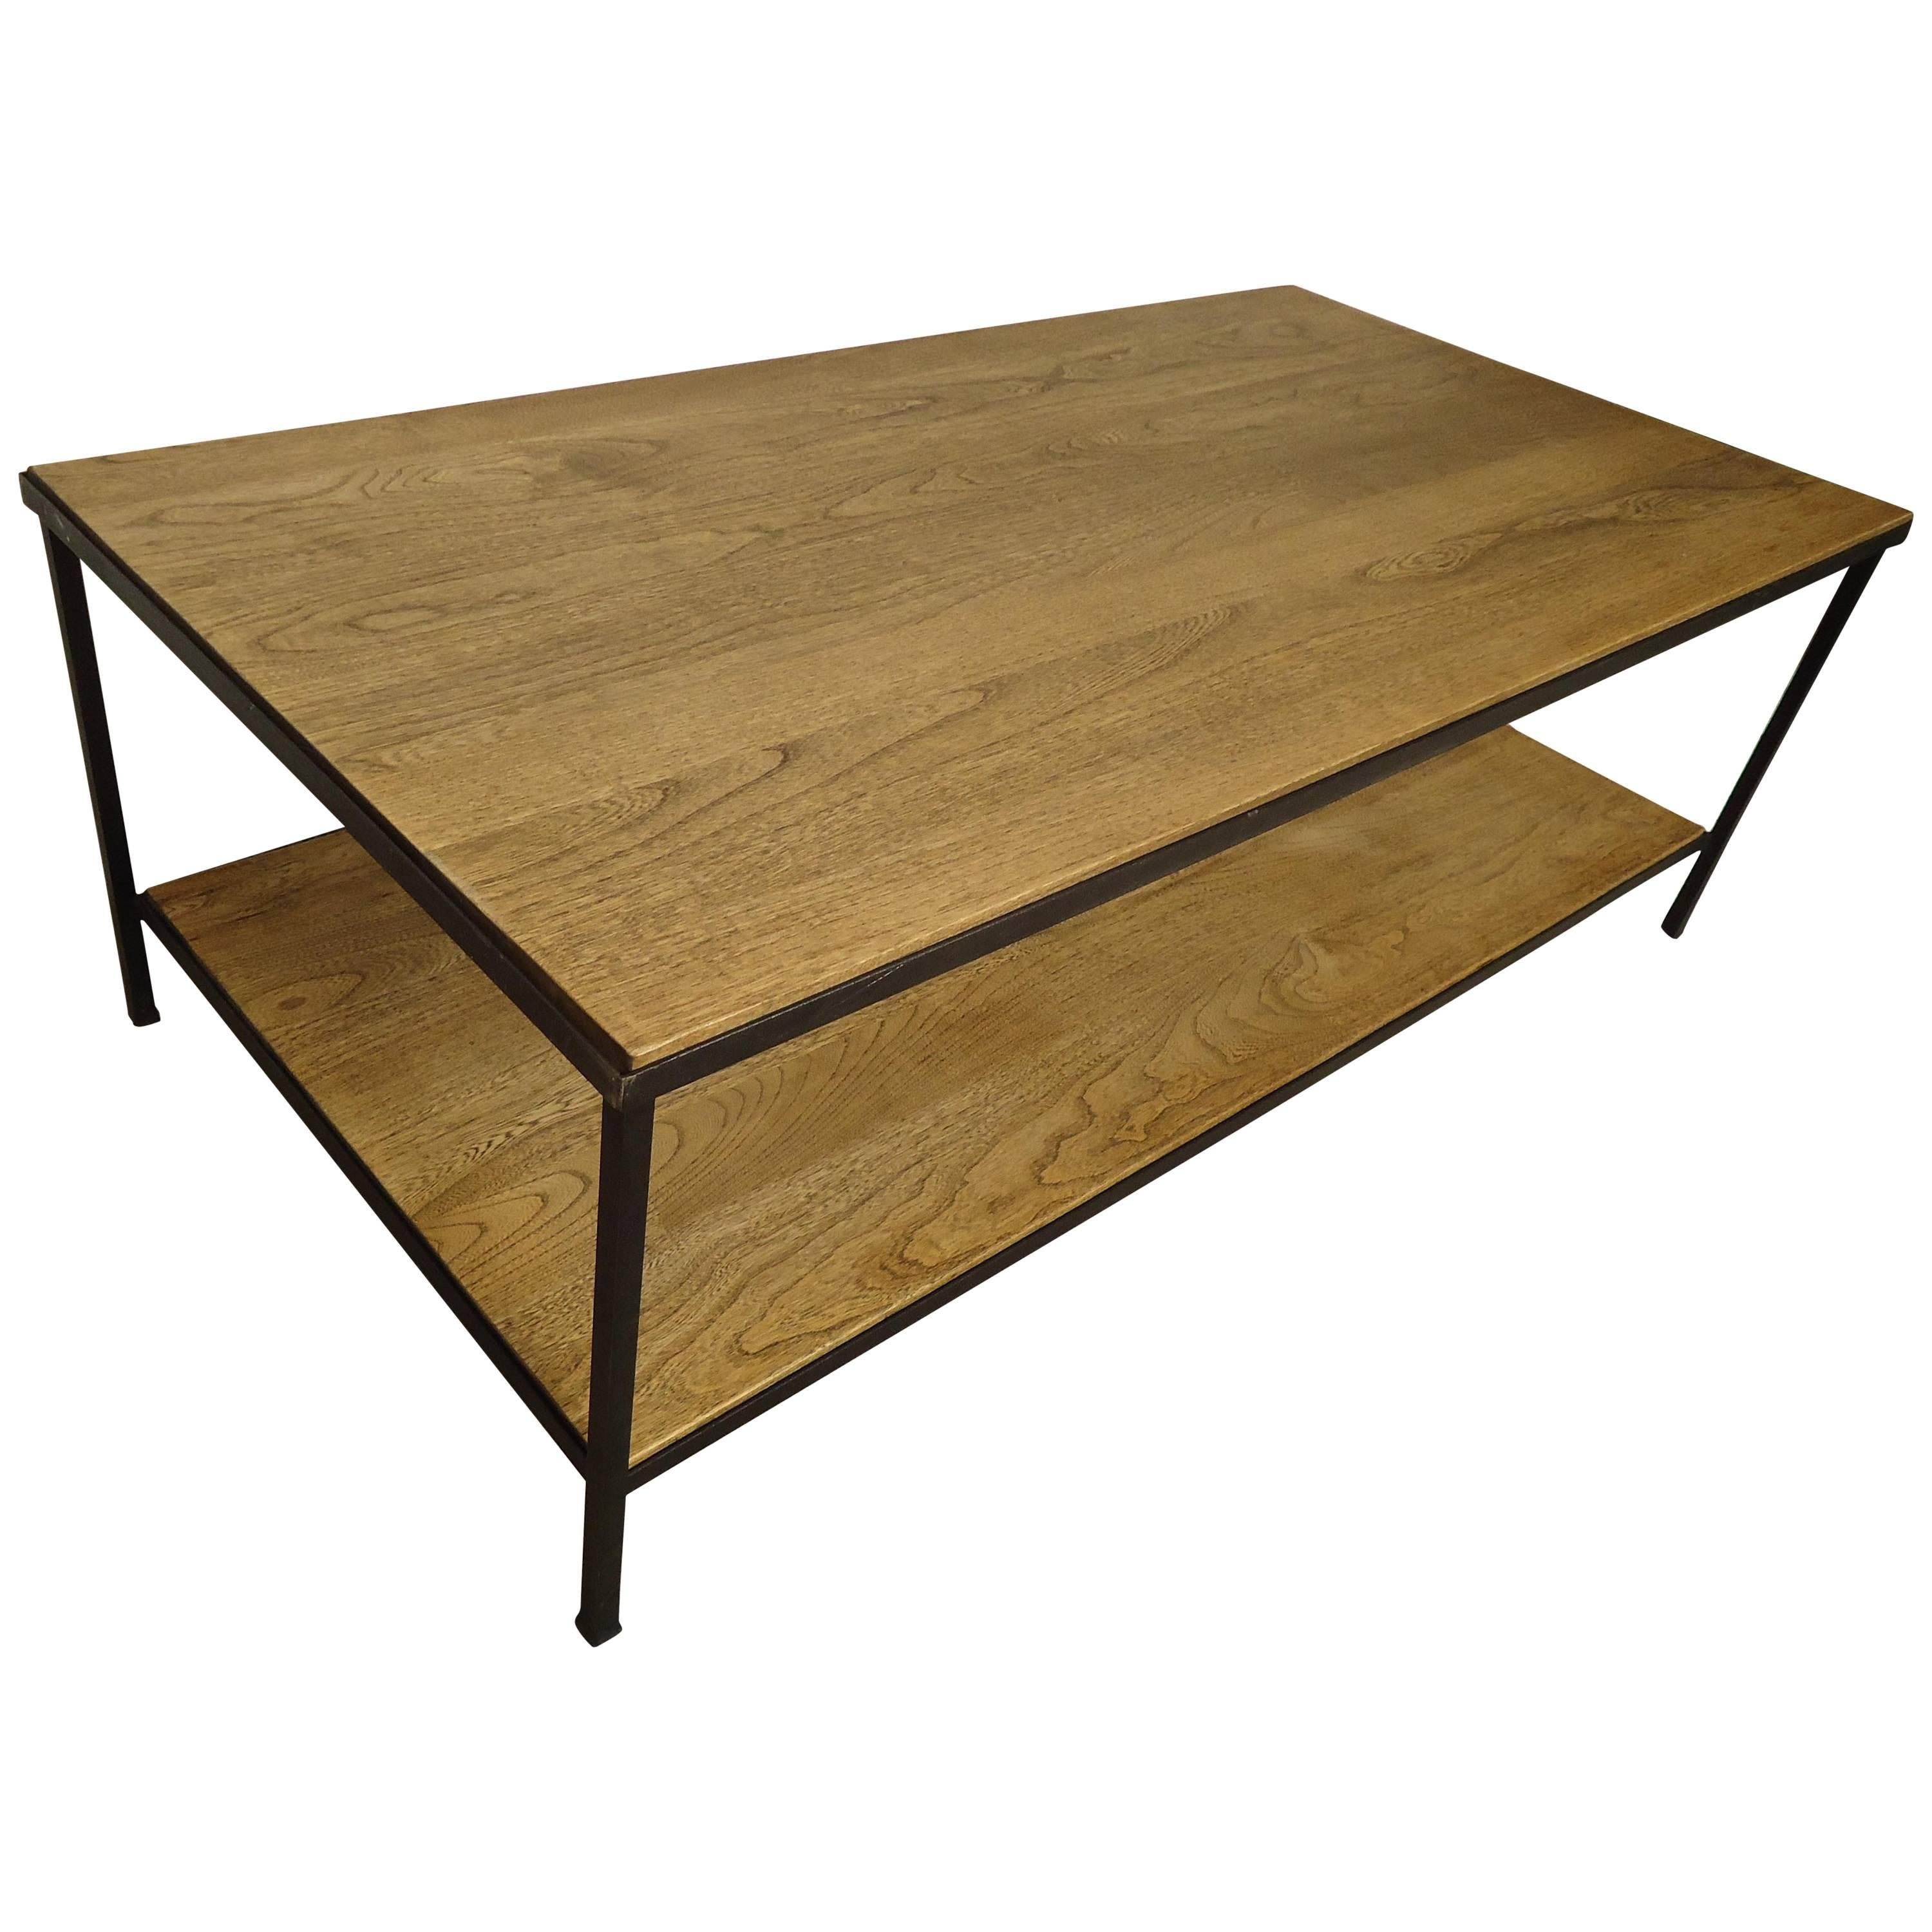 Solid Industrial Style Two-Tier Coffee Table